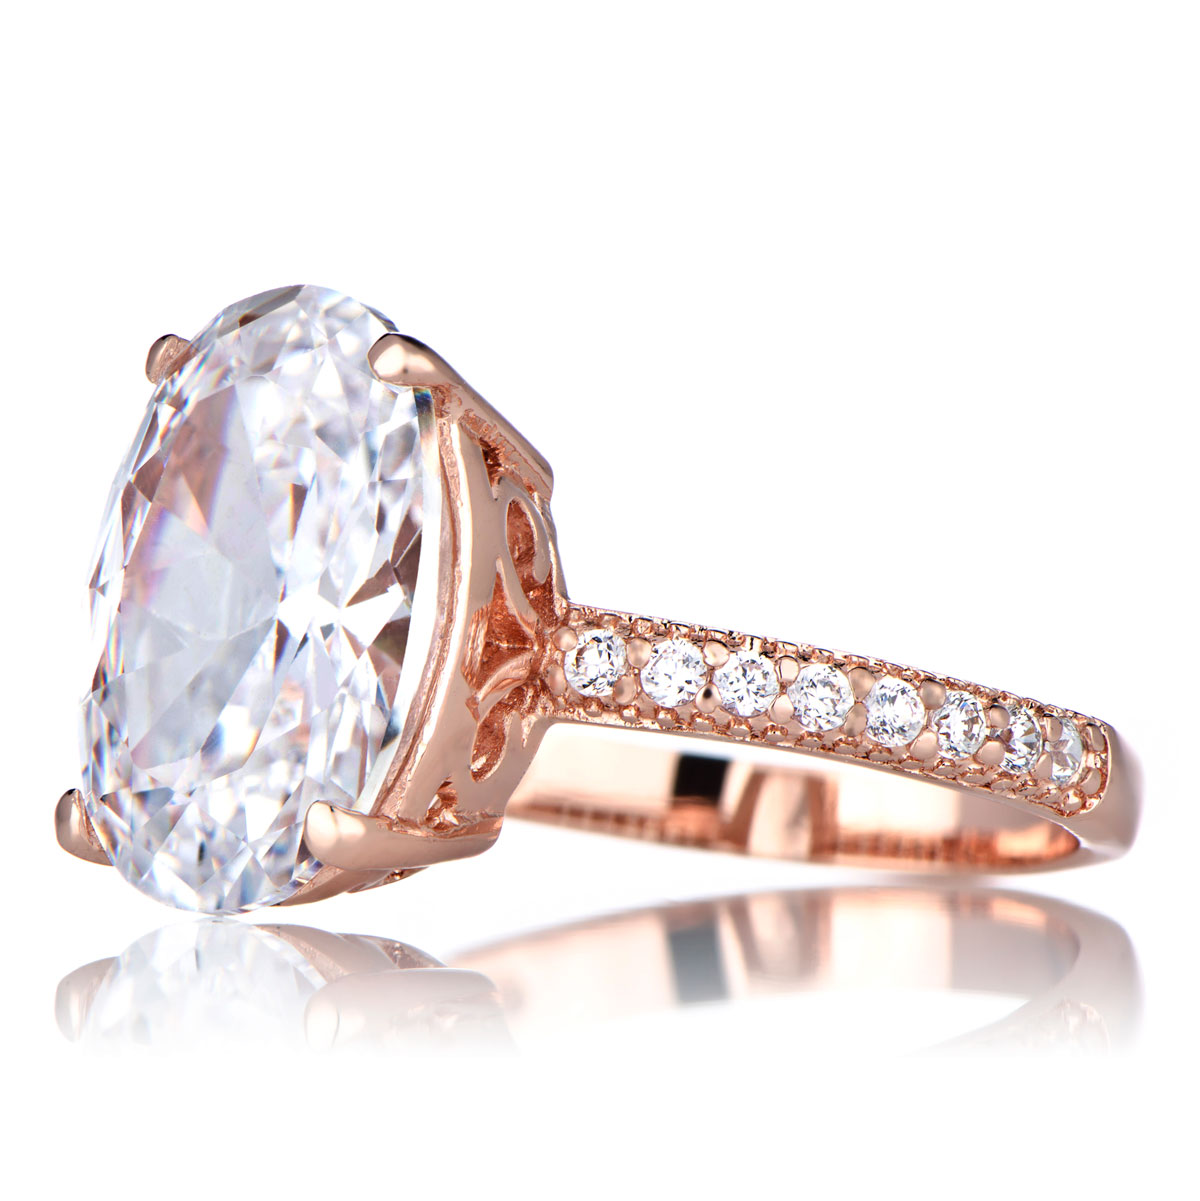 s three rings cz engagement tracey edmonds canary replica ring eve inspired celebrity stone